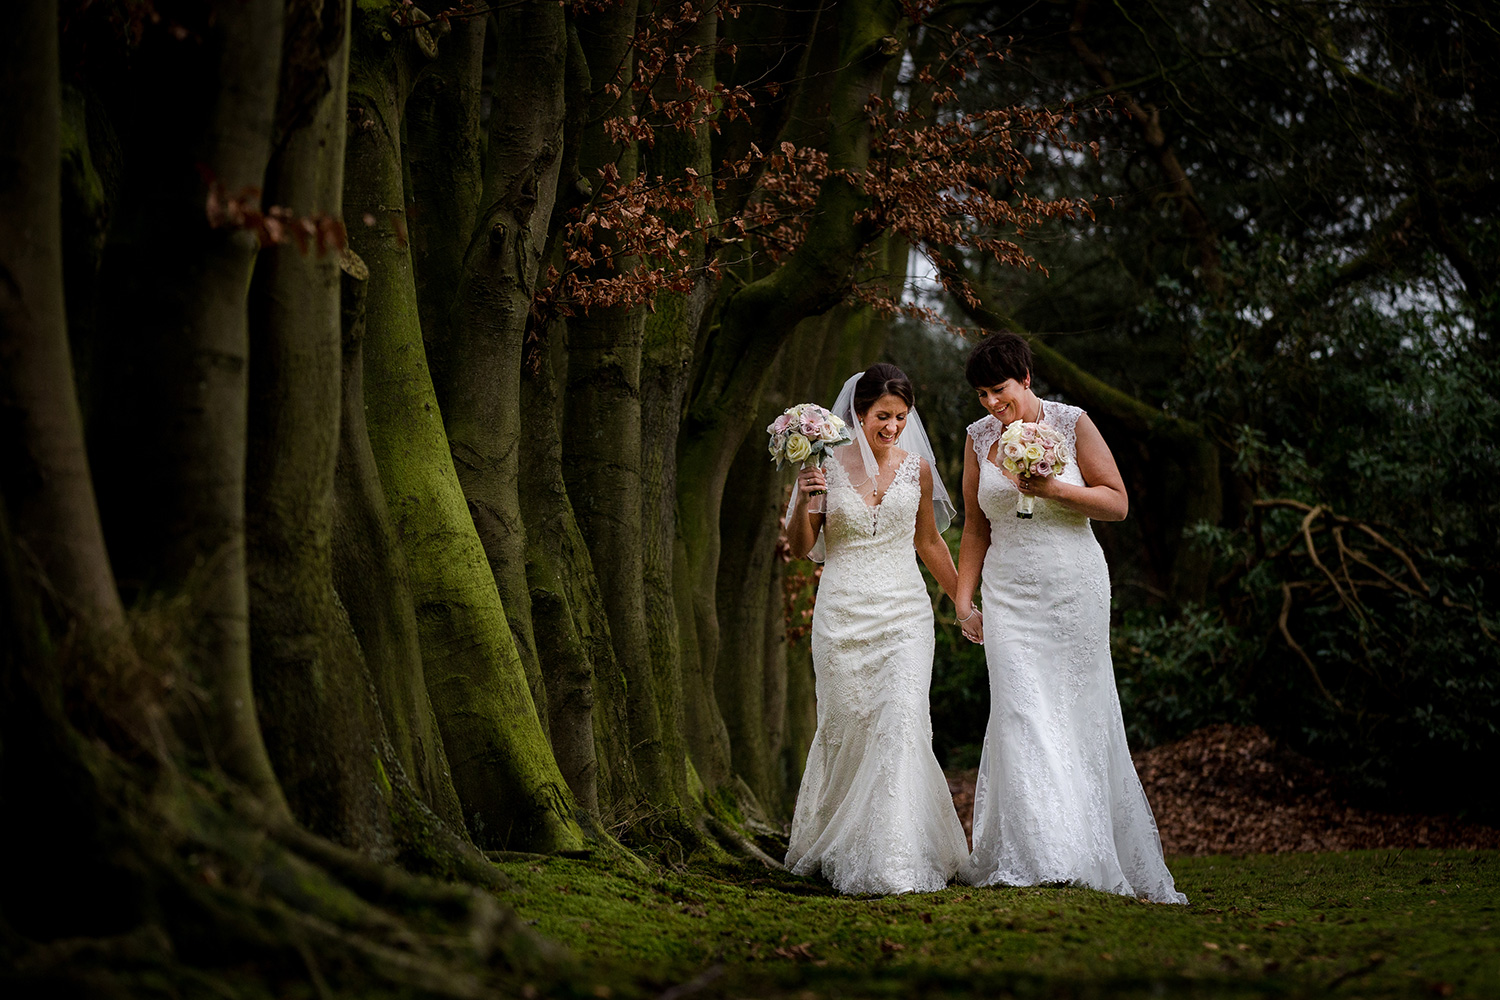 Kathryn & Siobhan's Nunsmere Hall Wedding